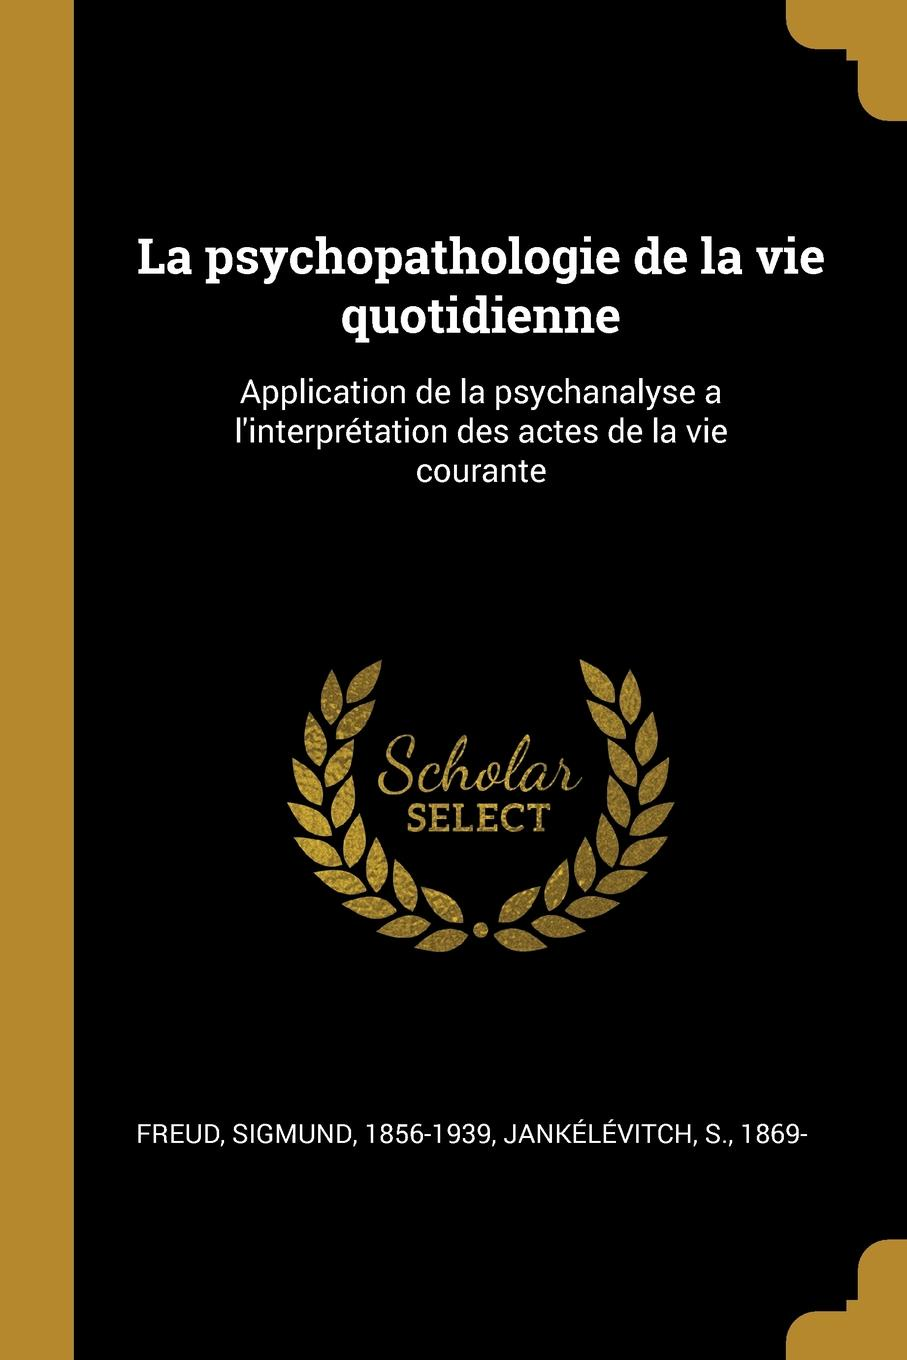 Freud Sigmund 1856-1939, Jankélévitch S. 1869- La psychopathologie de la vie quotidienne. Application de la psychanalyse a l.interpretation des actes de la vie courante